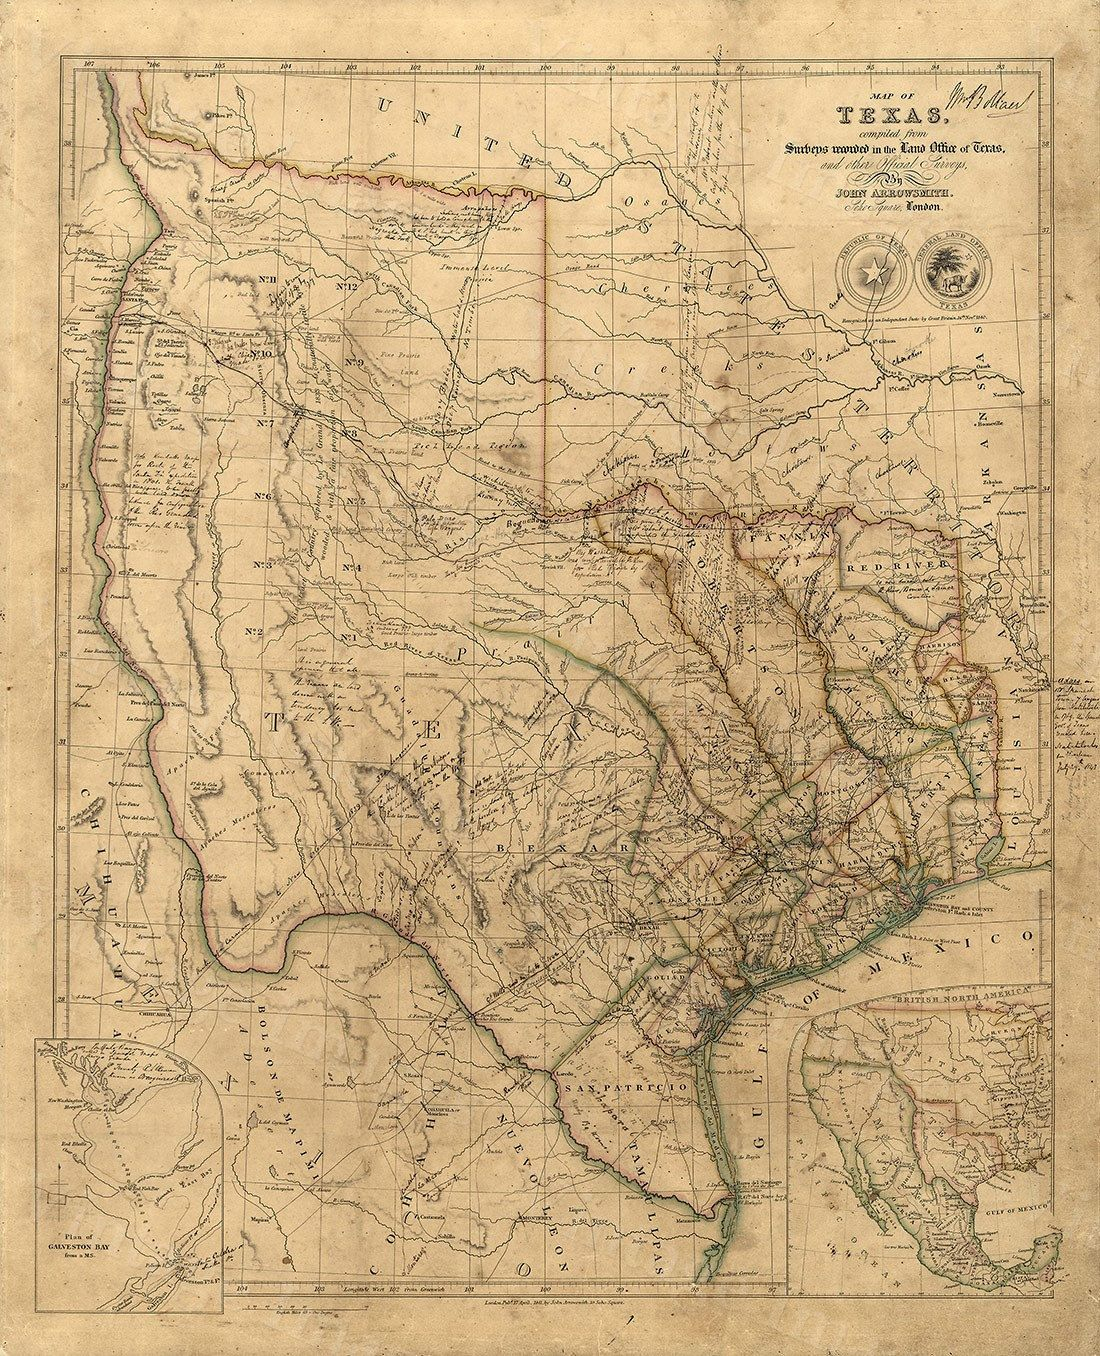 Old Texas Wall Map 1841 Historical Texas Map Antique Decorator Style - Republic Of Texas Map Framed